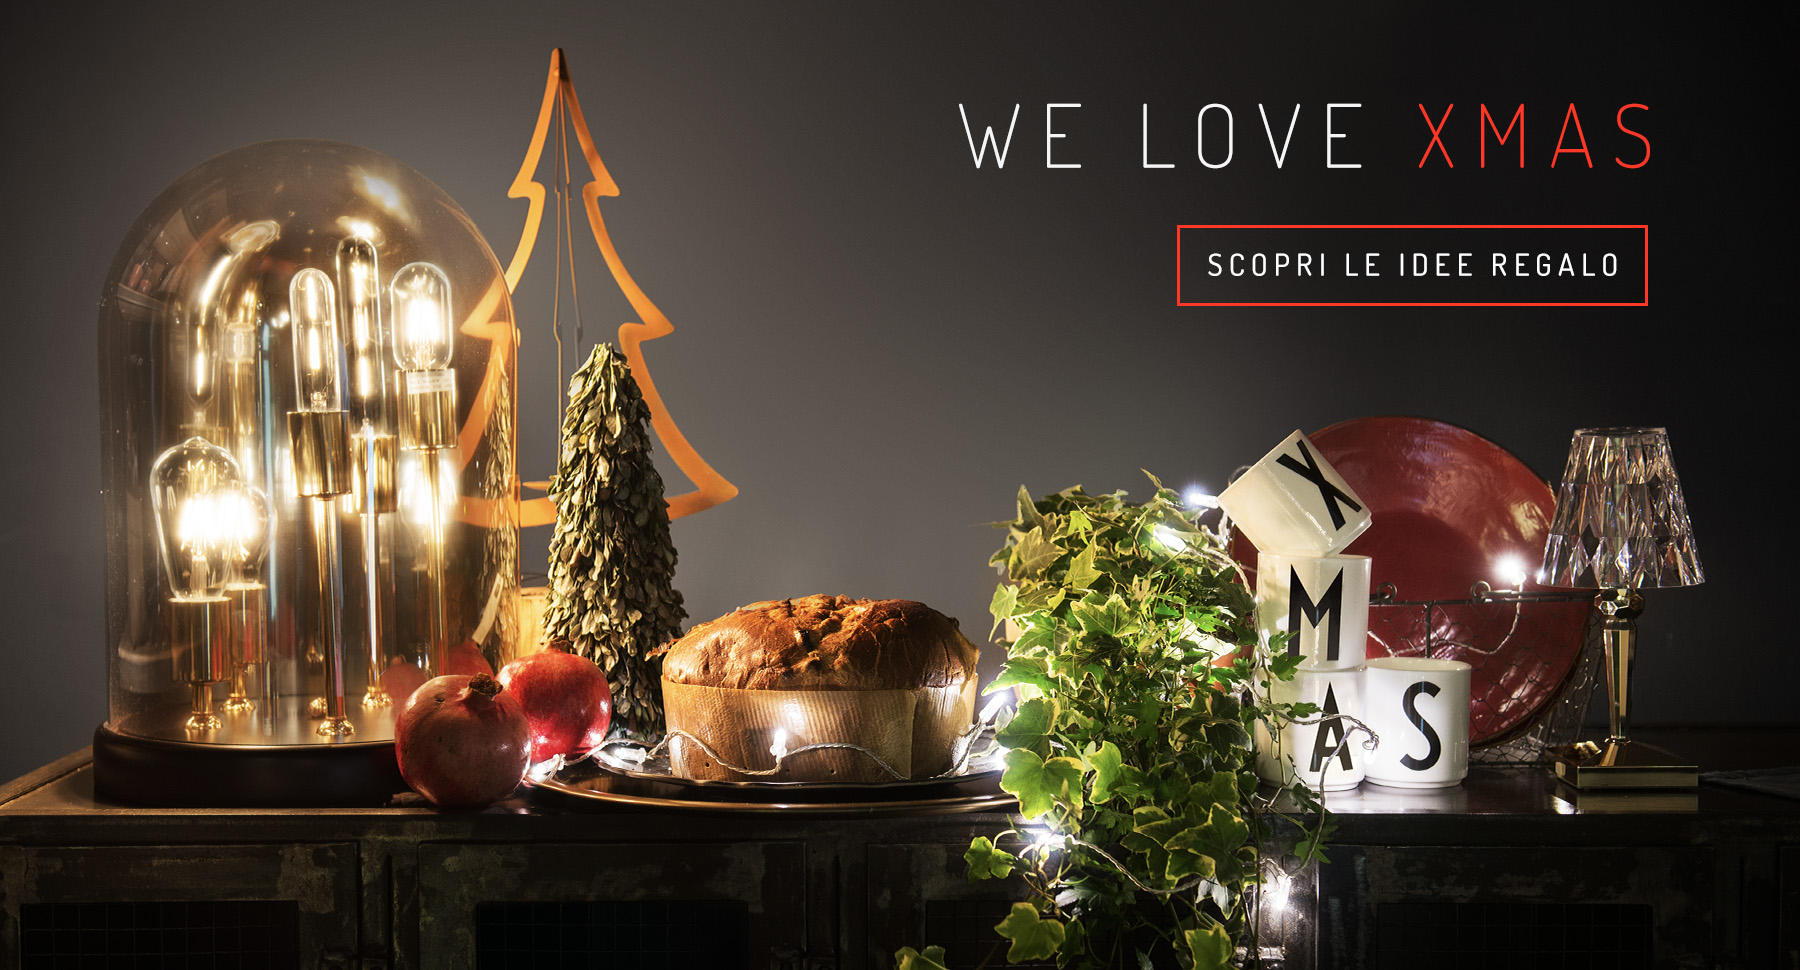 WE LOVE XMAS - Scopri le idee regalo